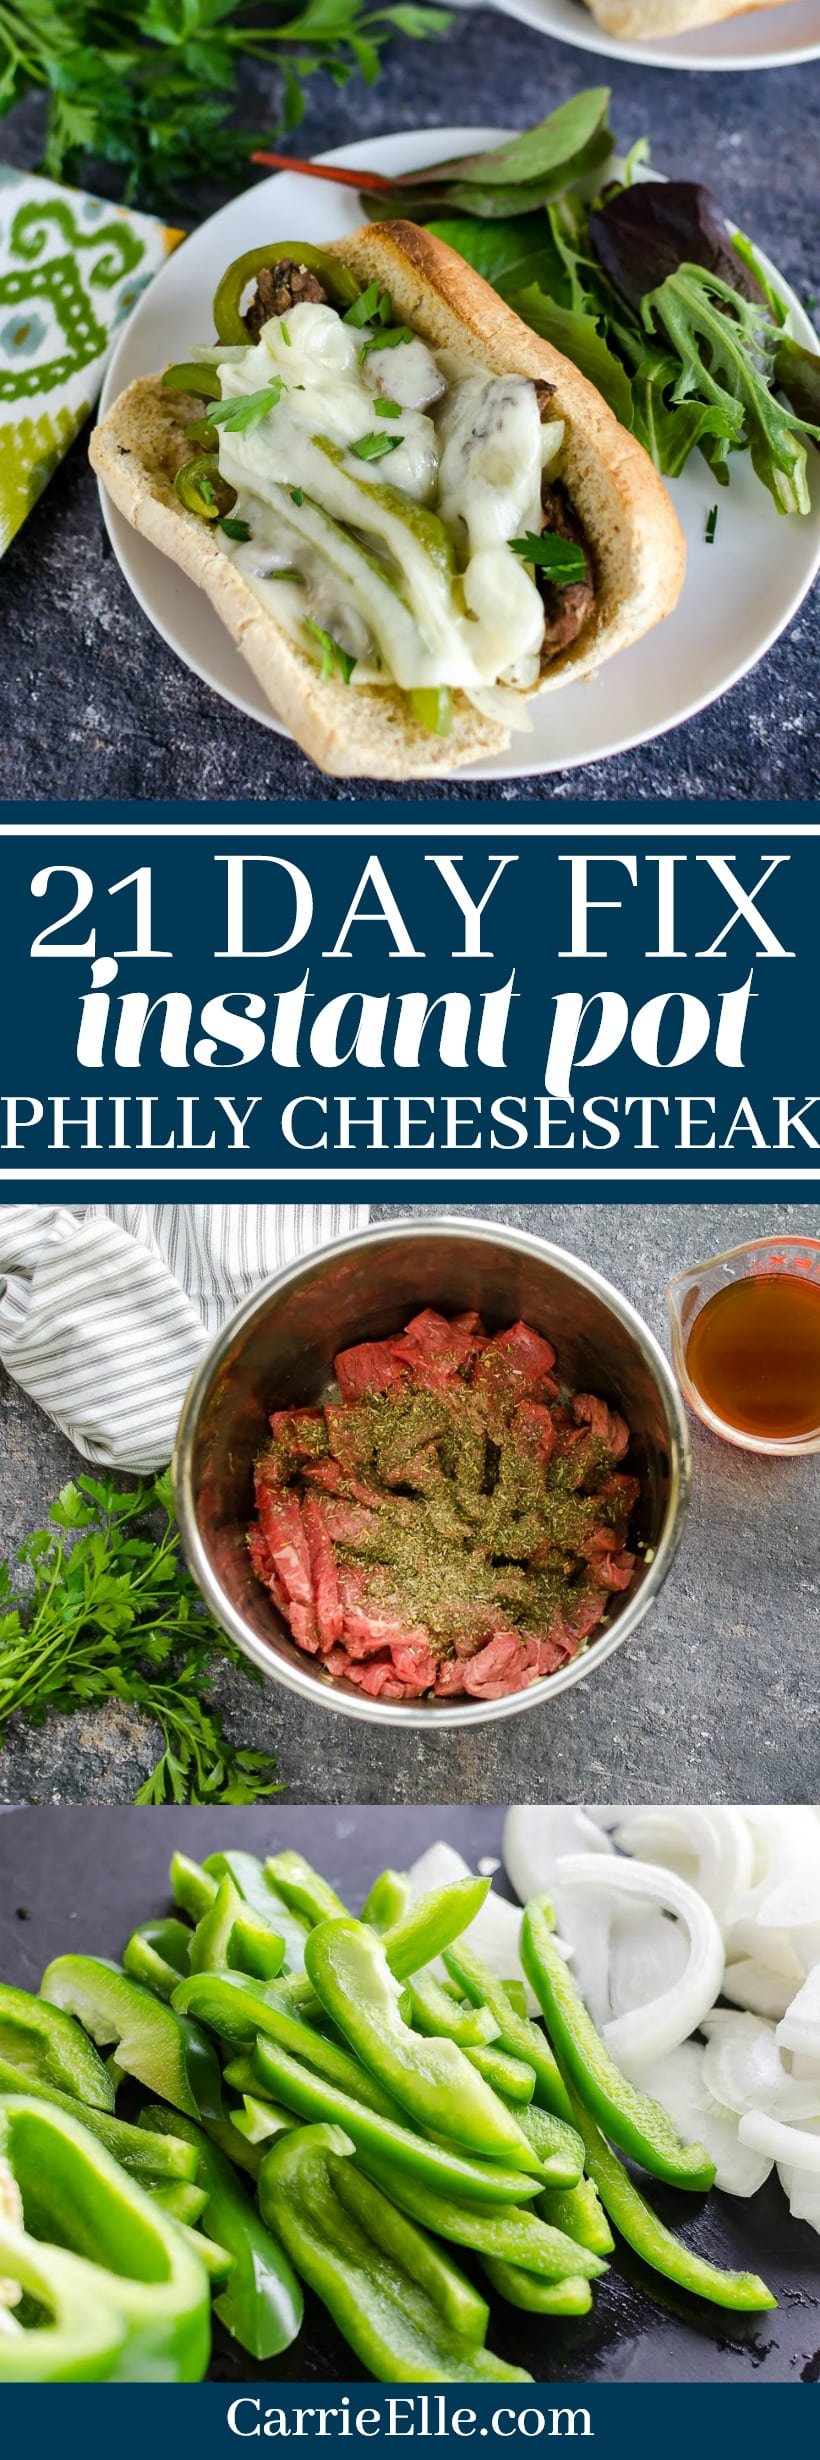 21 Day Fix Instant Pot Philly Cheesesteak